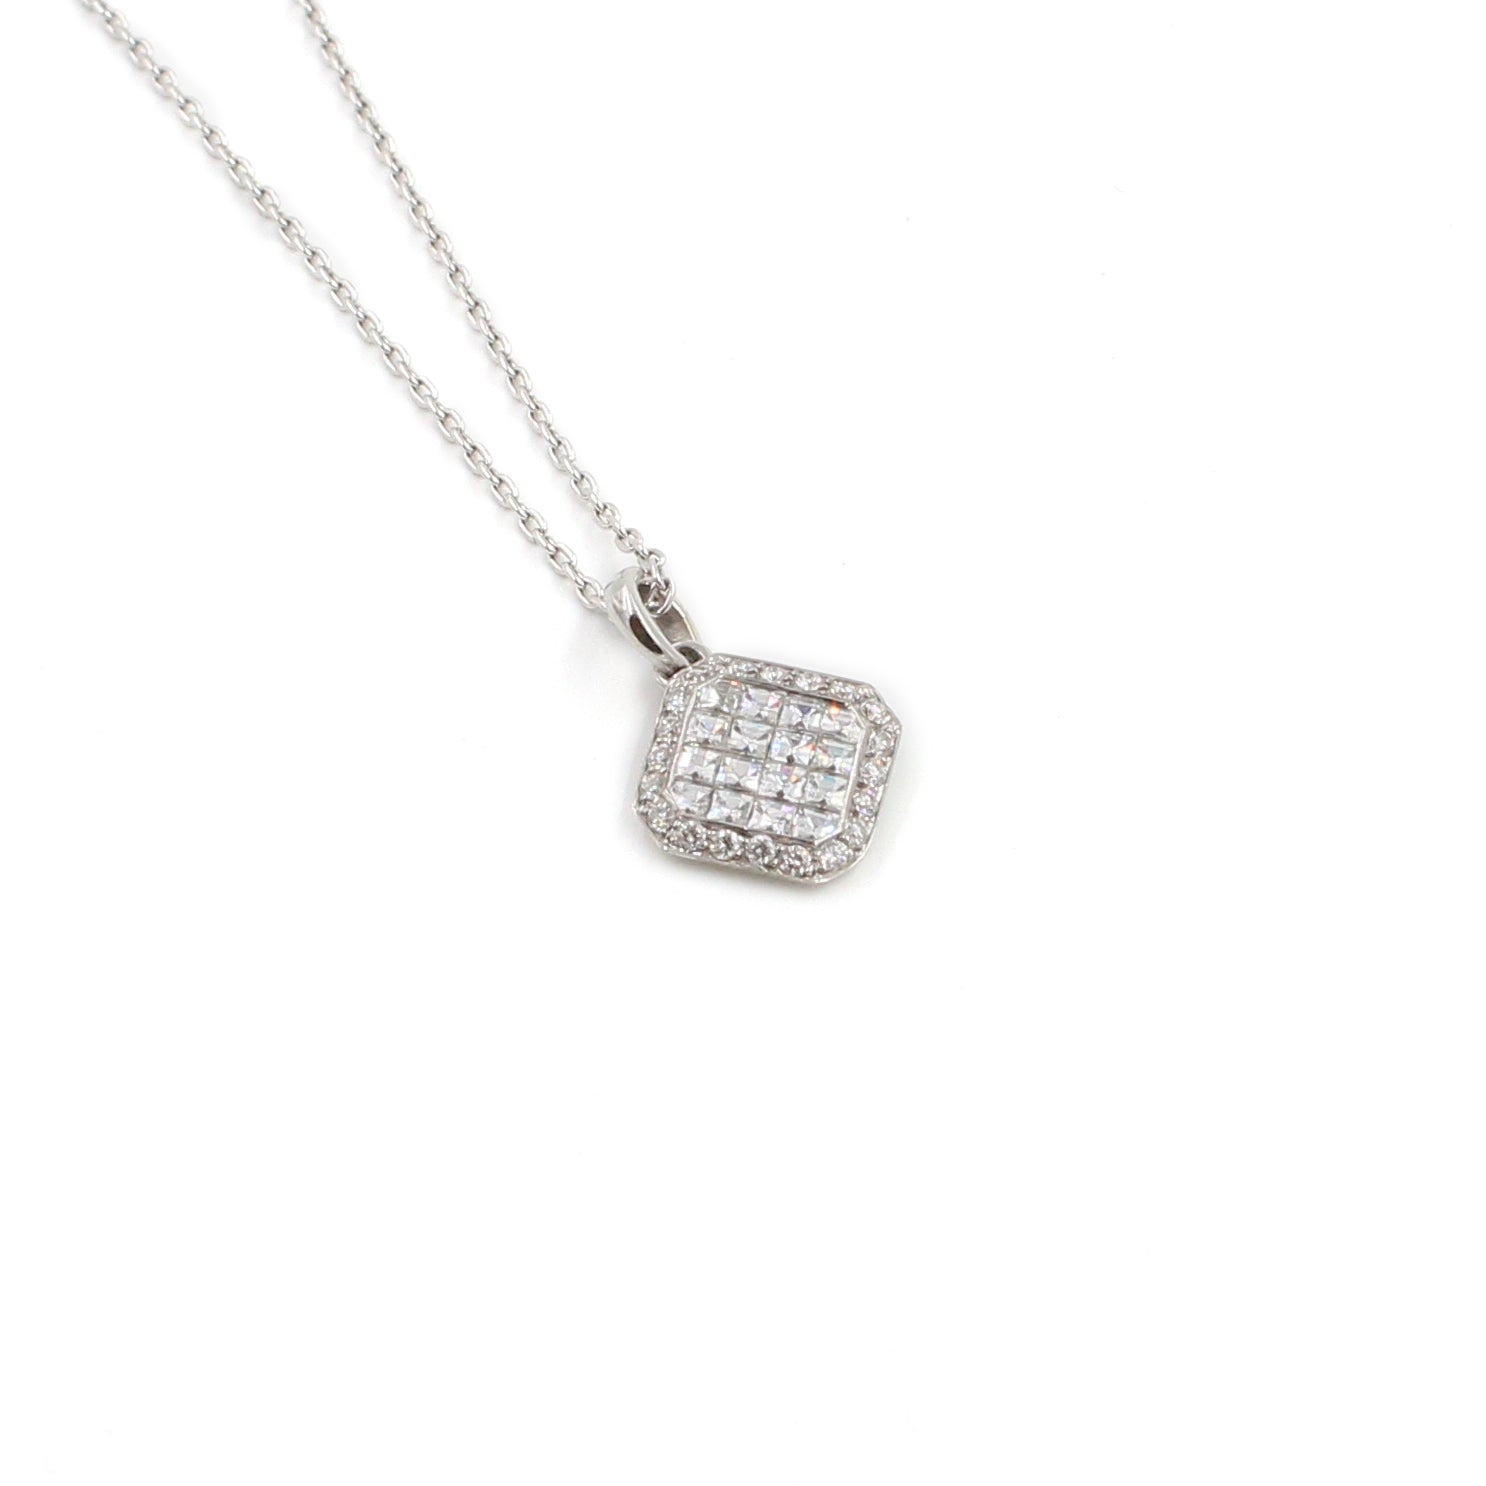 Fine Jewelry Collection: Asscher Shaped Diamond Pendant Necklace